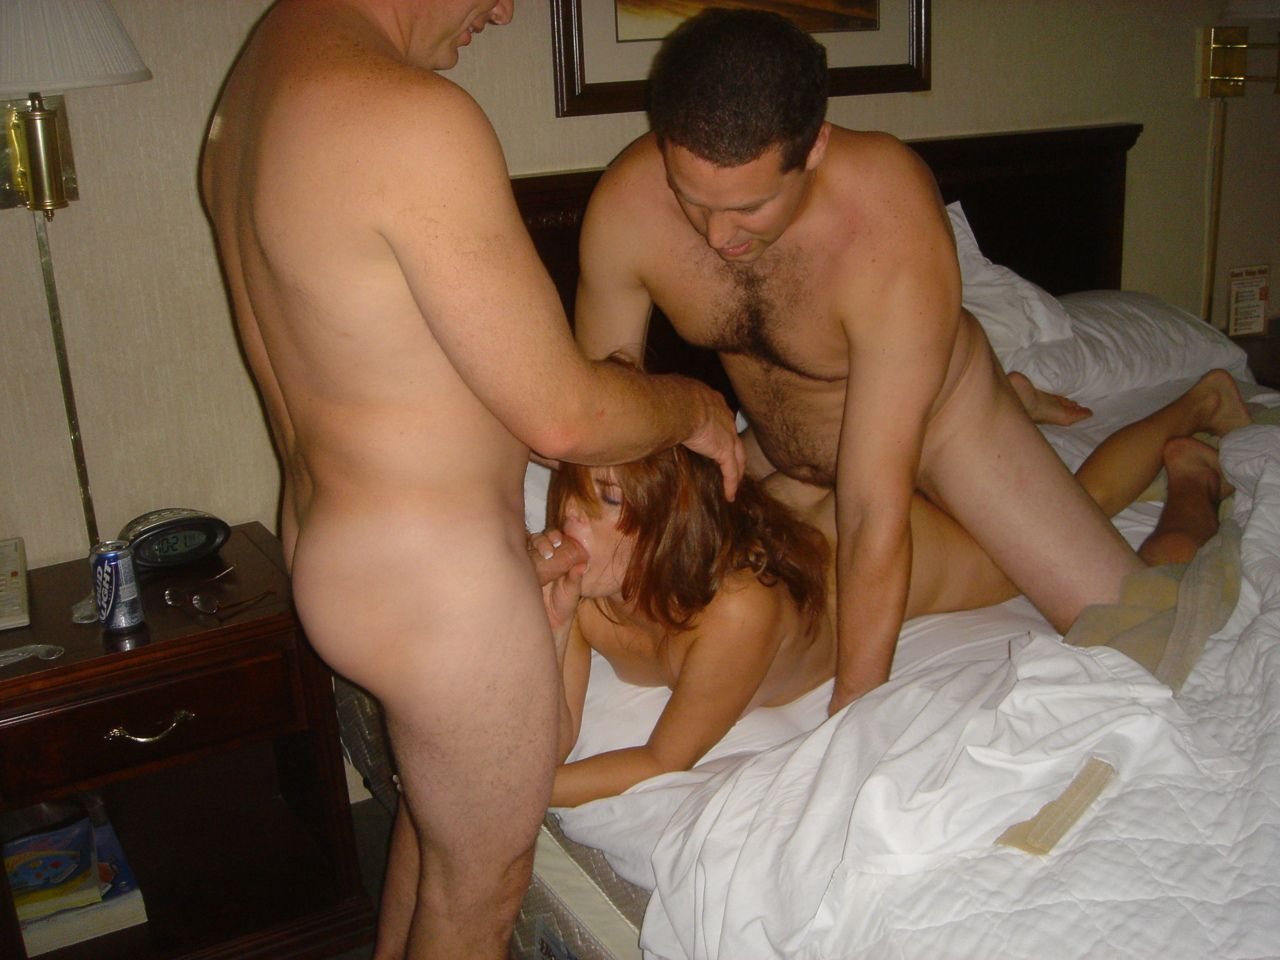 dicks-cum-hot-wives-threesome-pussy-lip